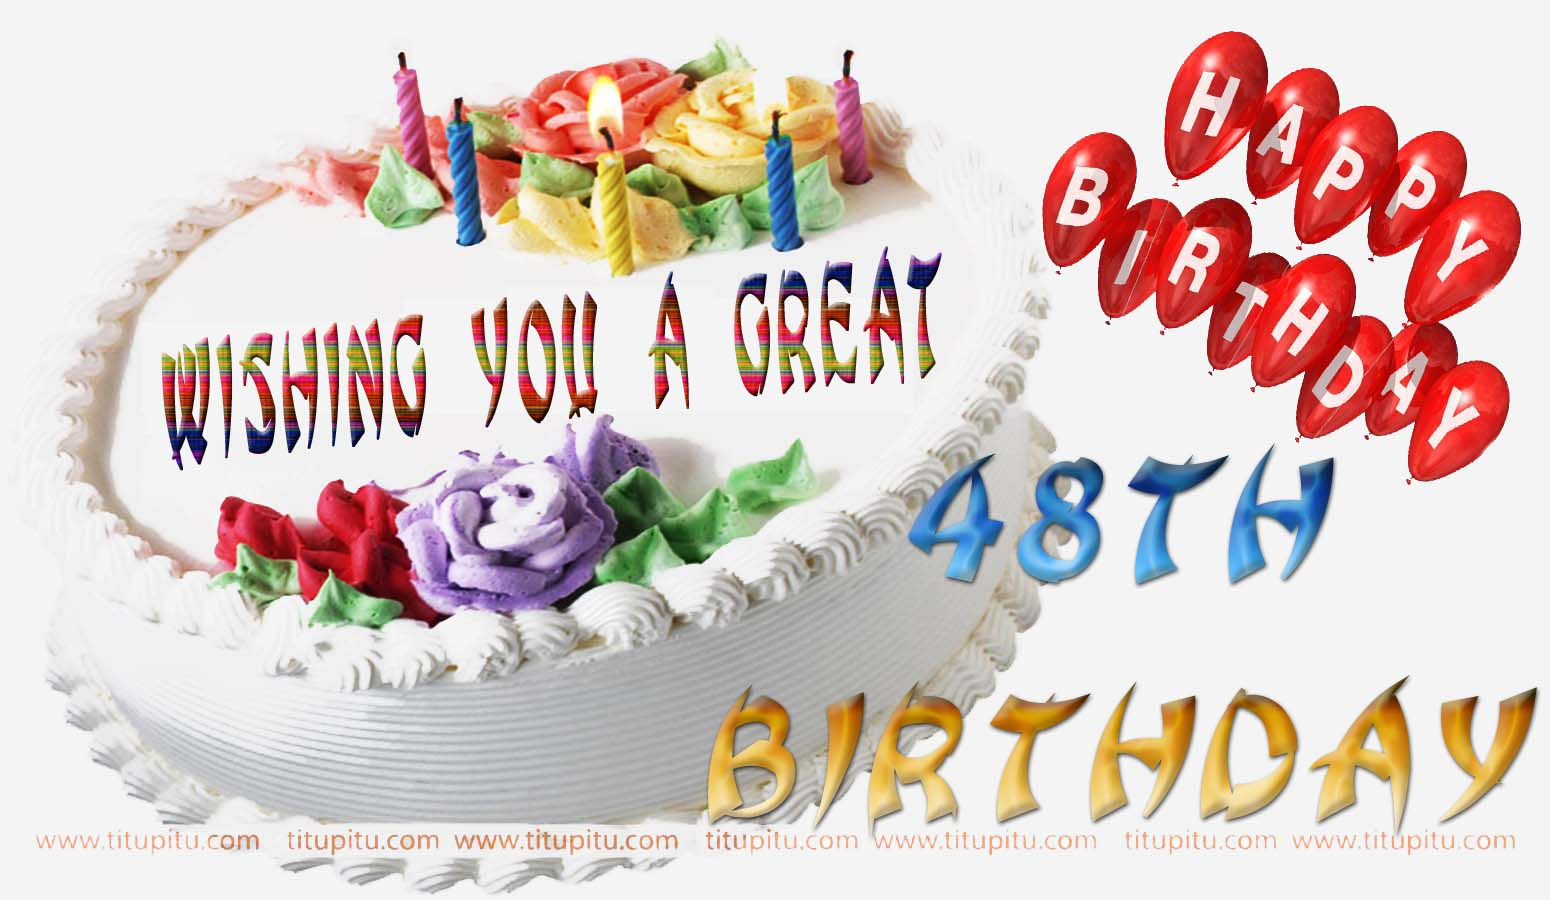 48th Birthday Wishes Message And Wallpaper For Everyone